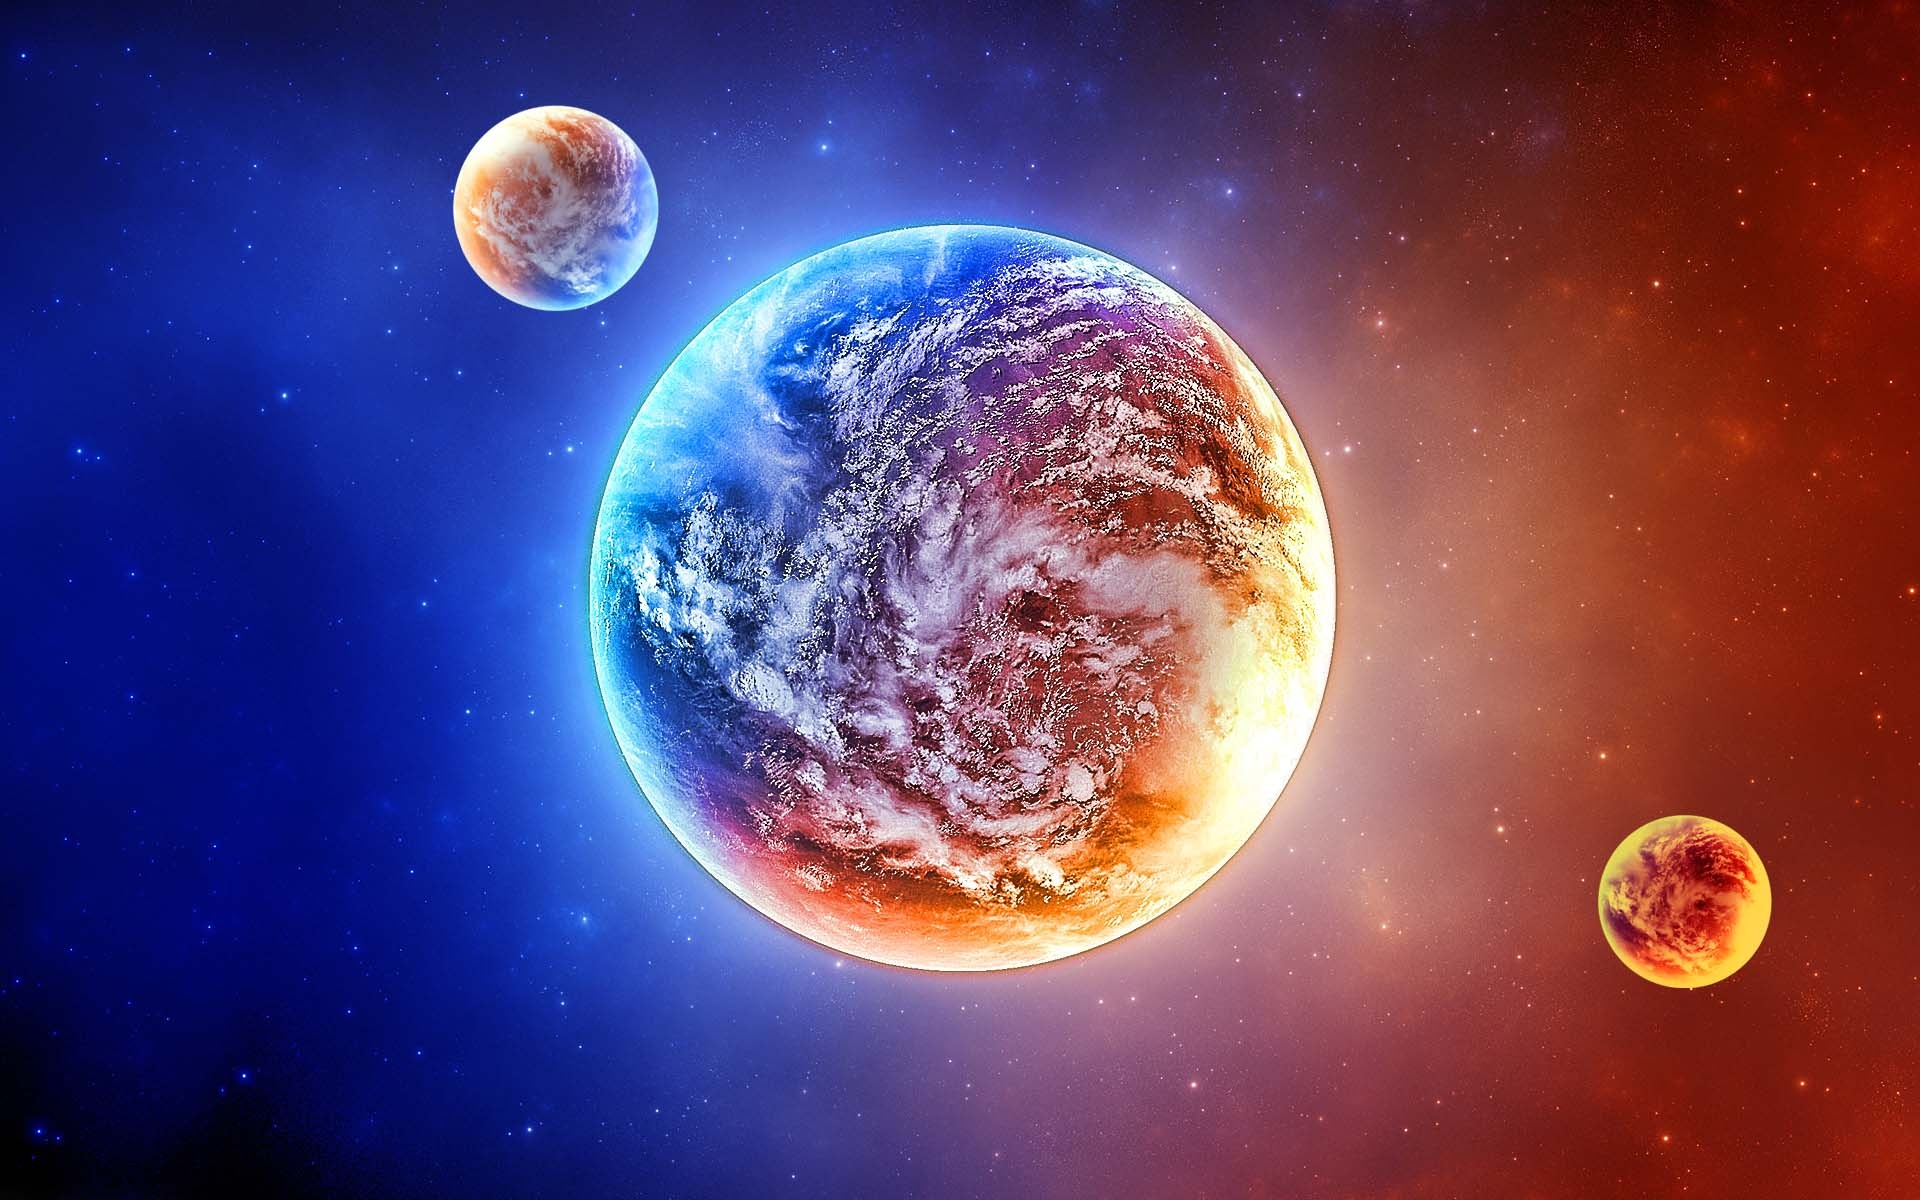 3d wallpaper colorful planets - photo #10